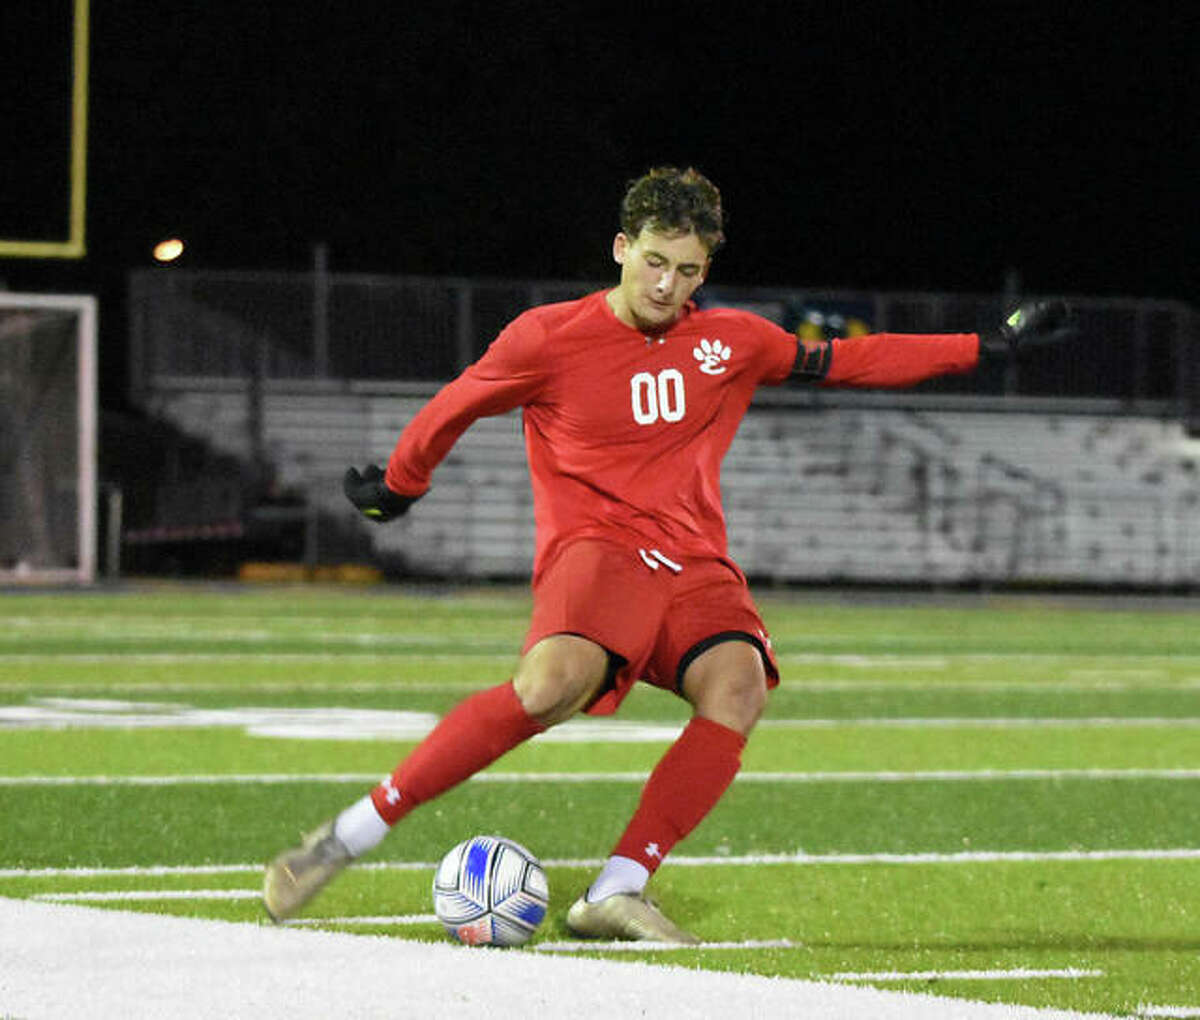 Edwardsville keeper Nathan Beck blasts a free-kick down the field during the second half on Tuesday in O'Fallon.